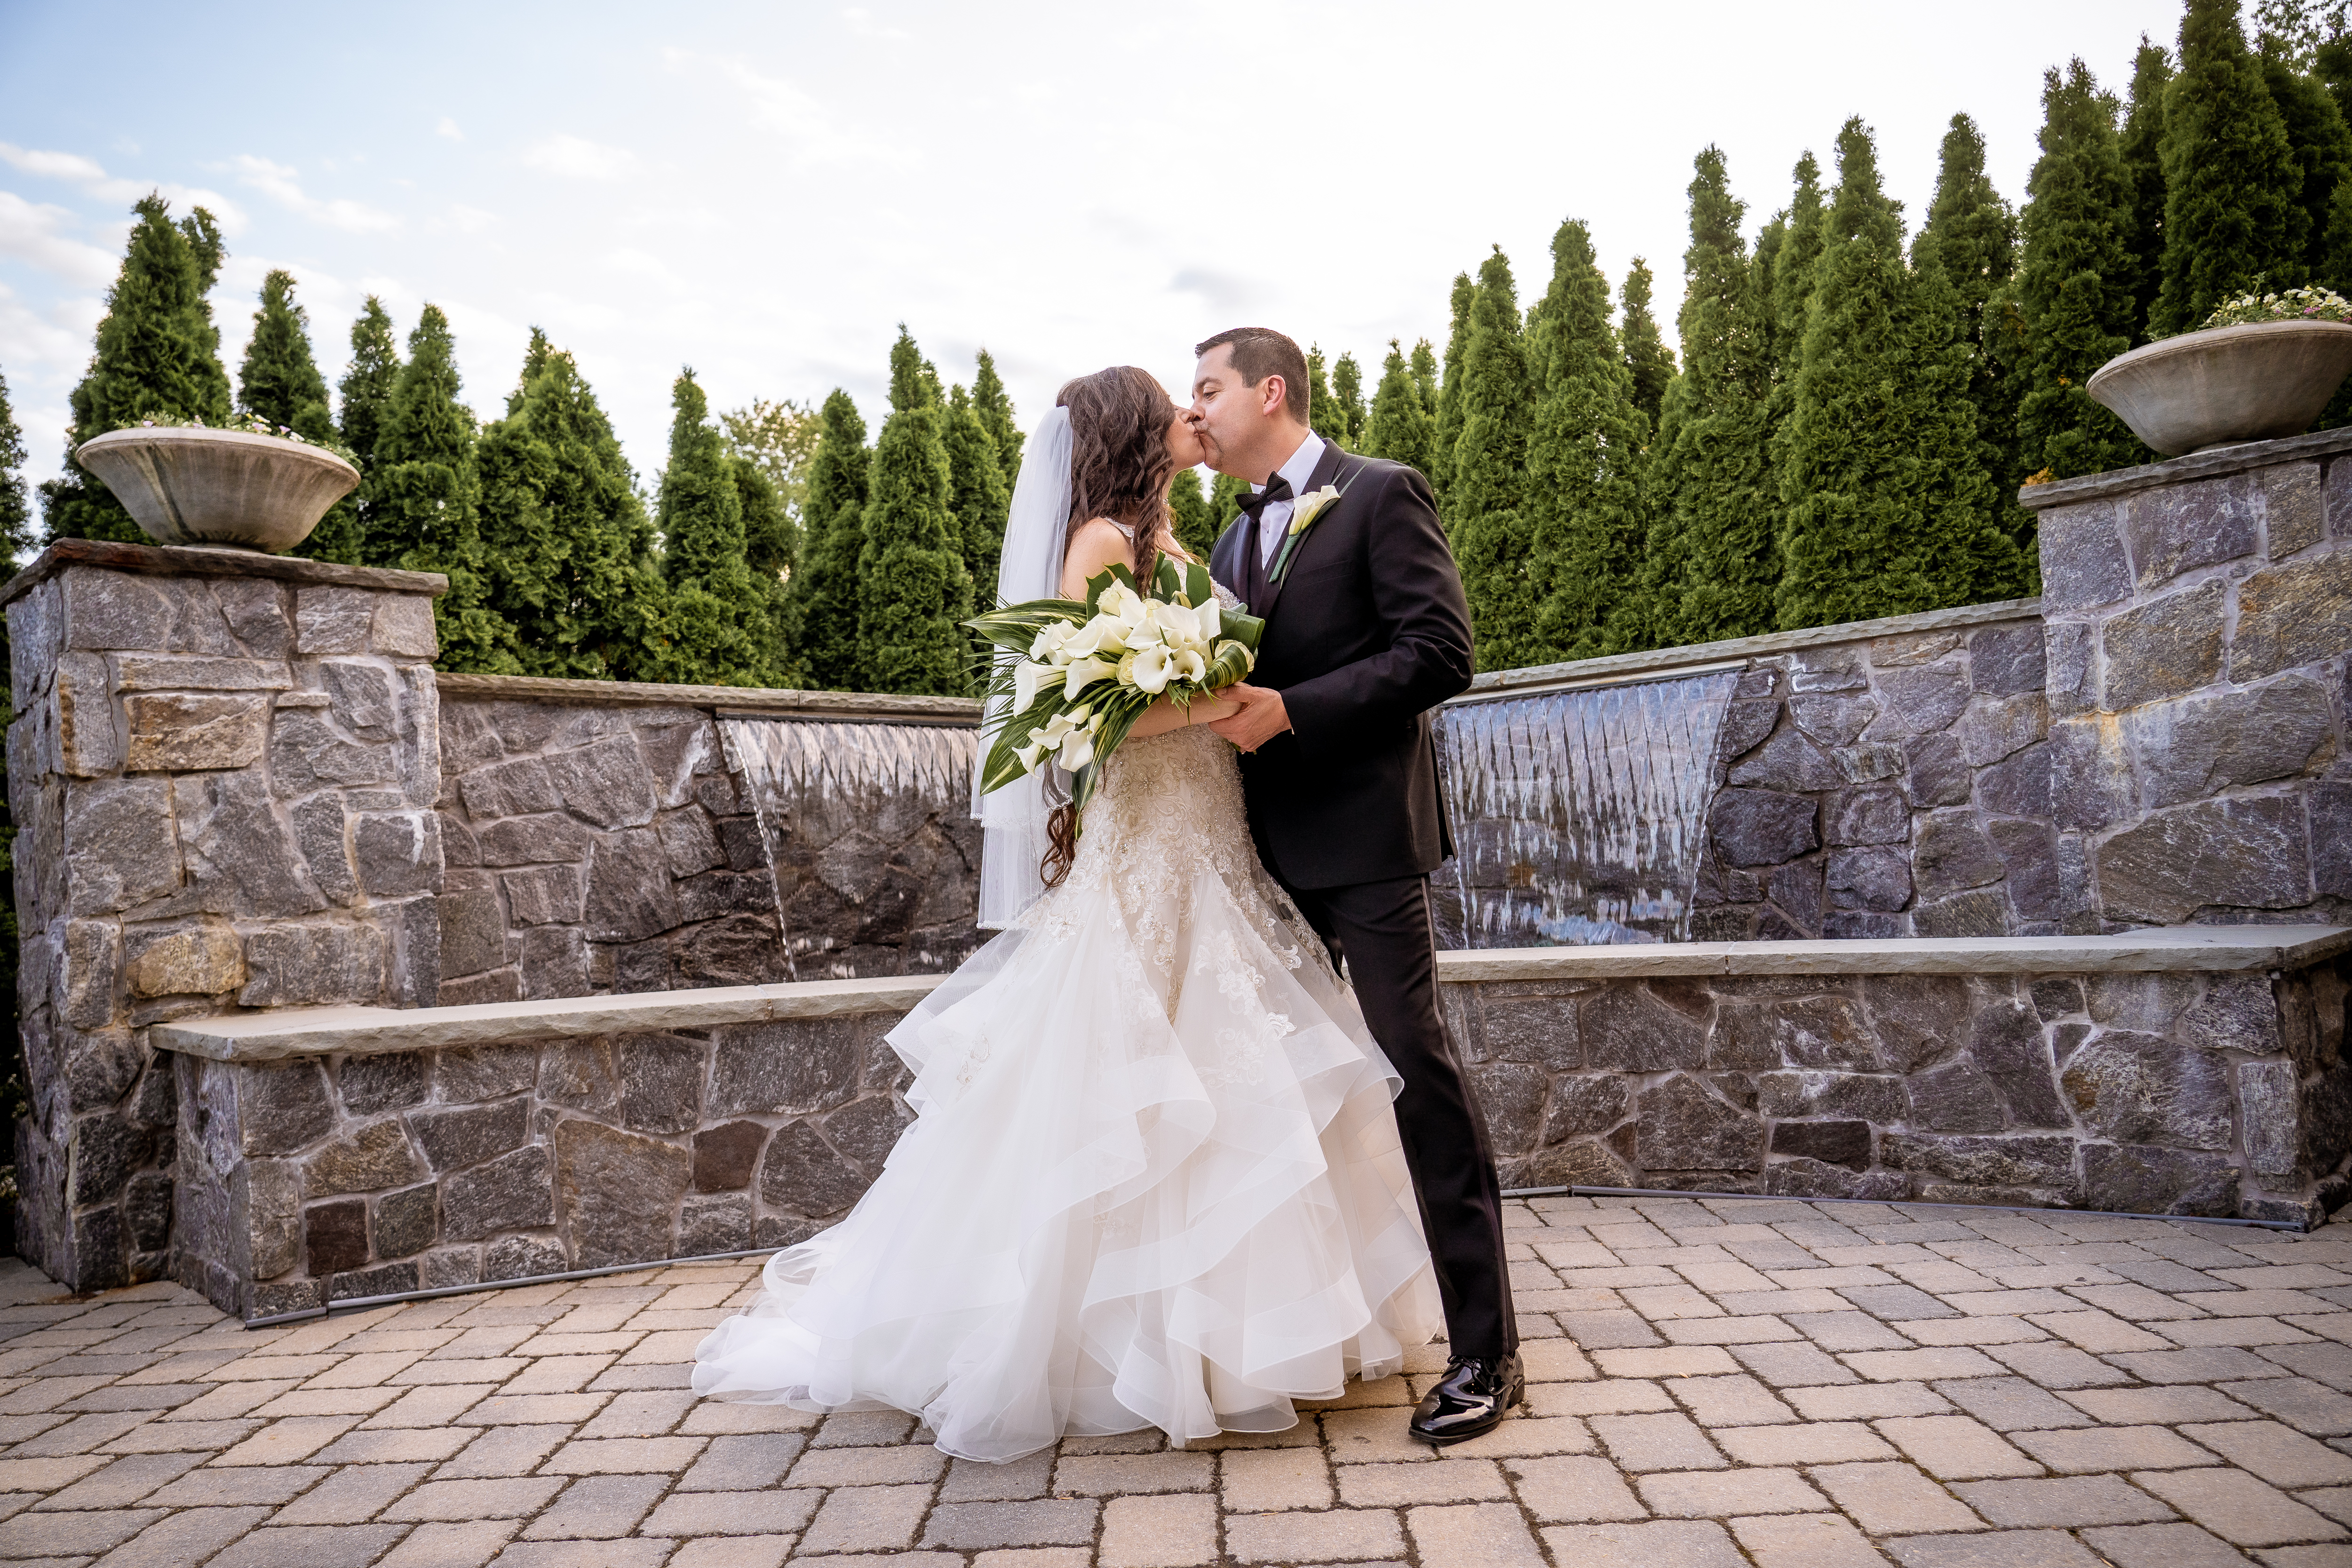 Hudson Valley engagement and wedding photographer